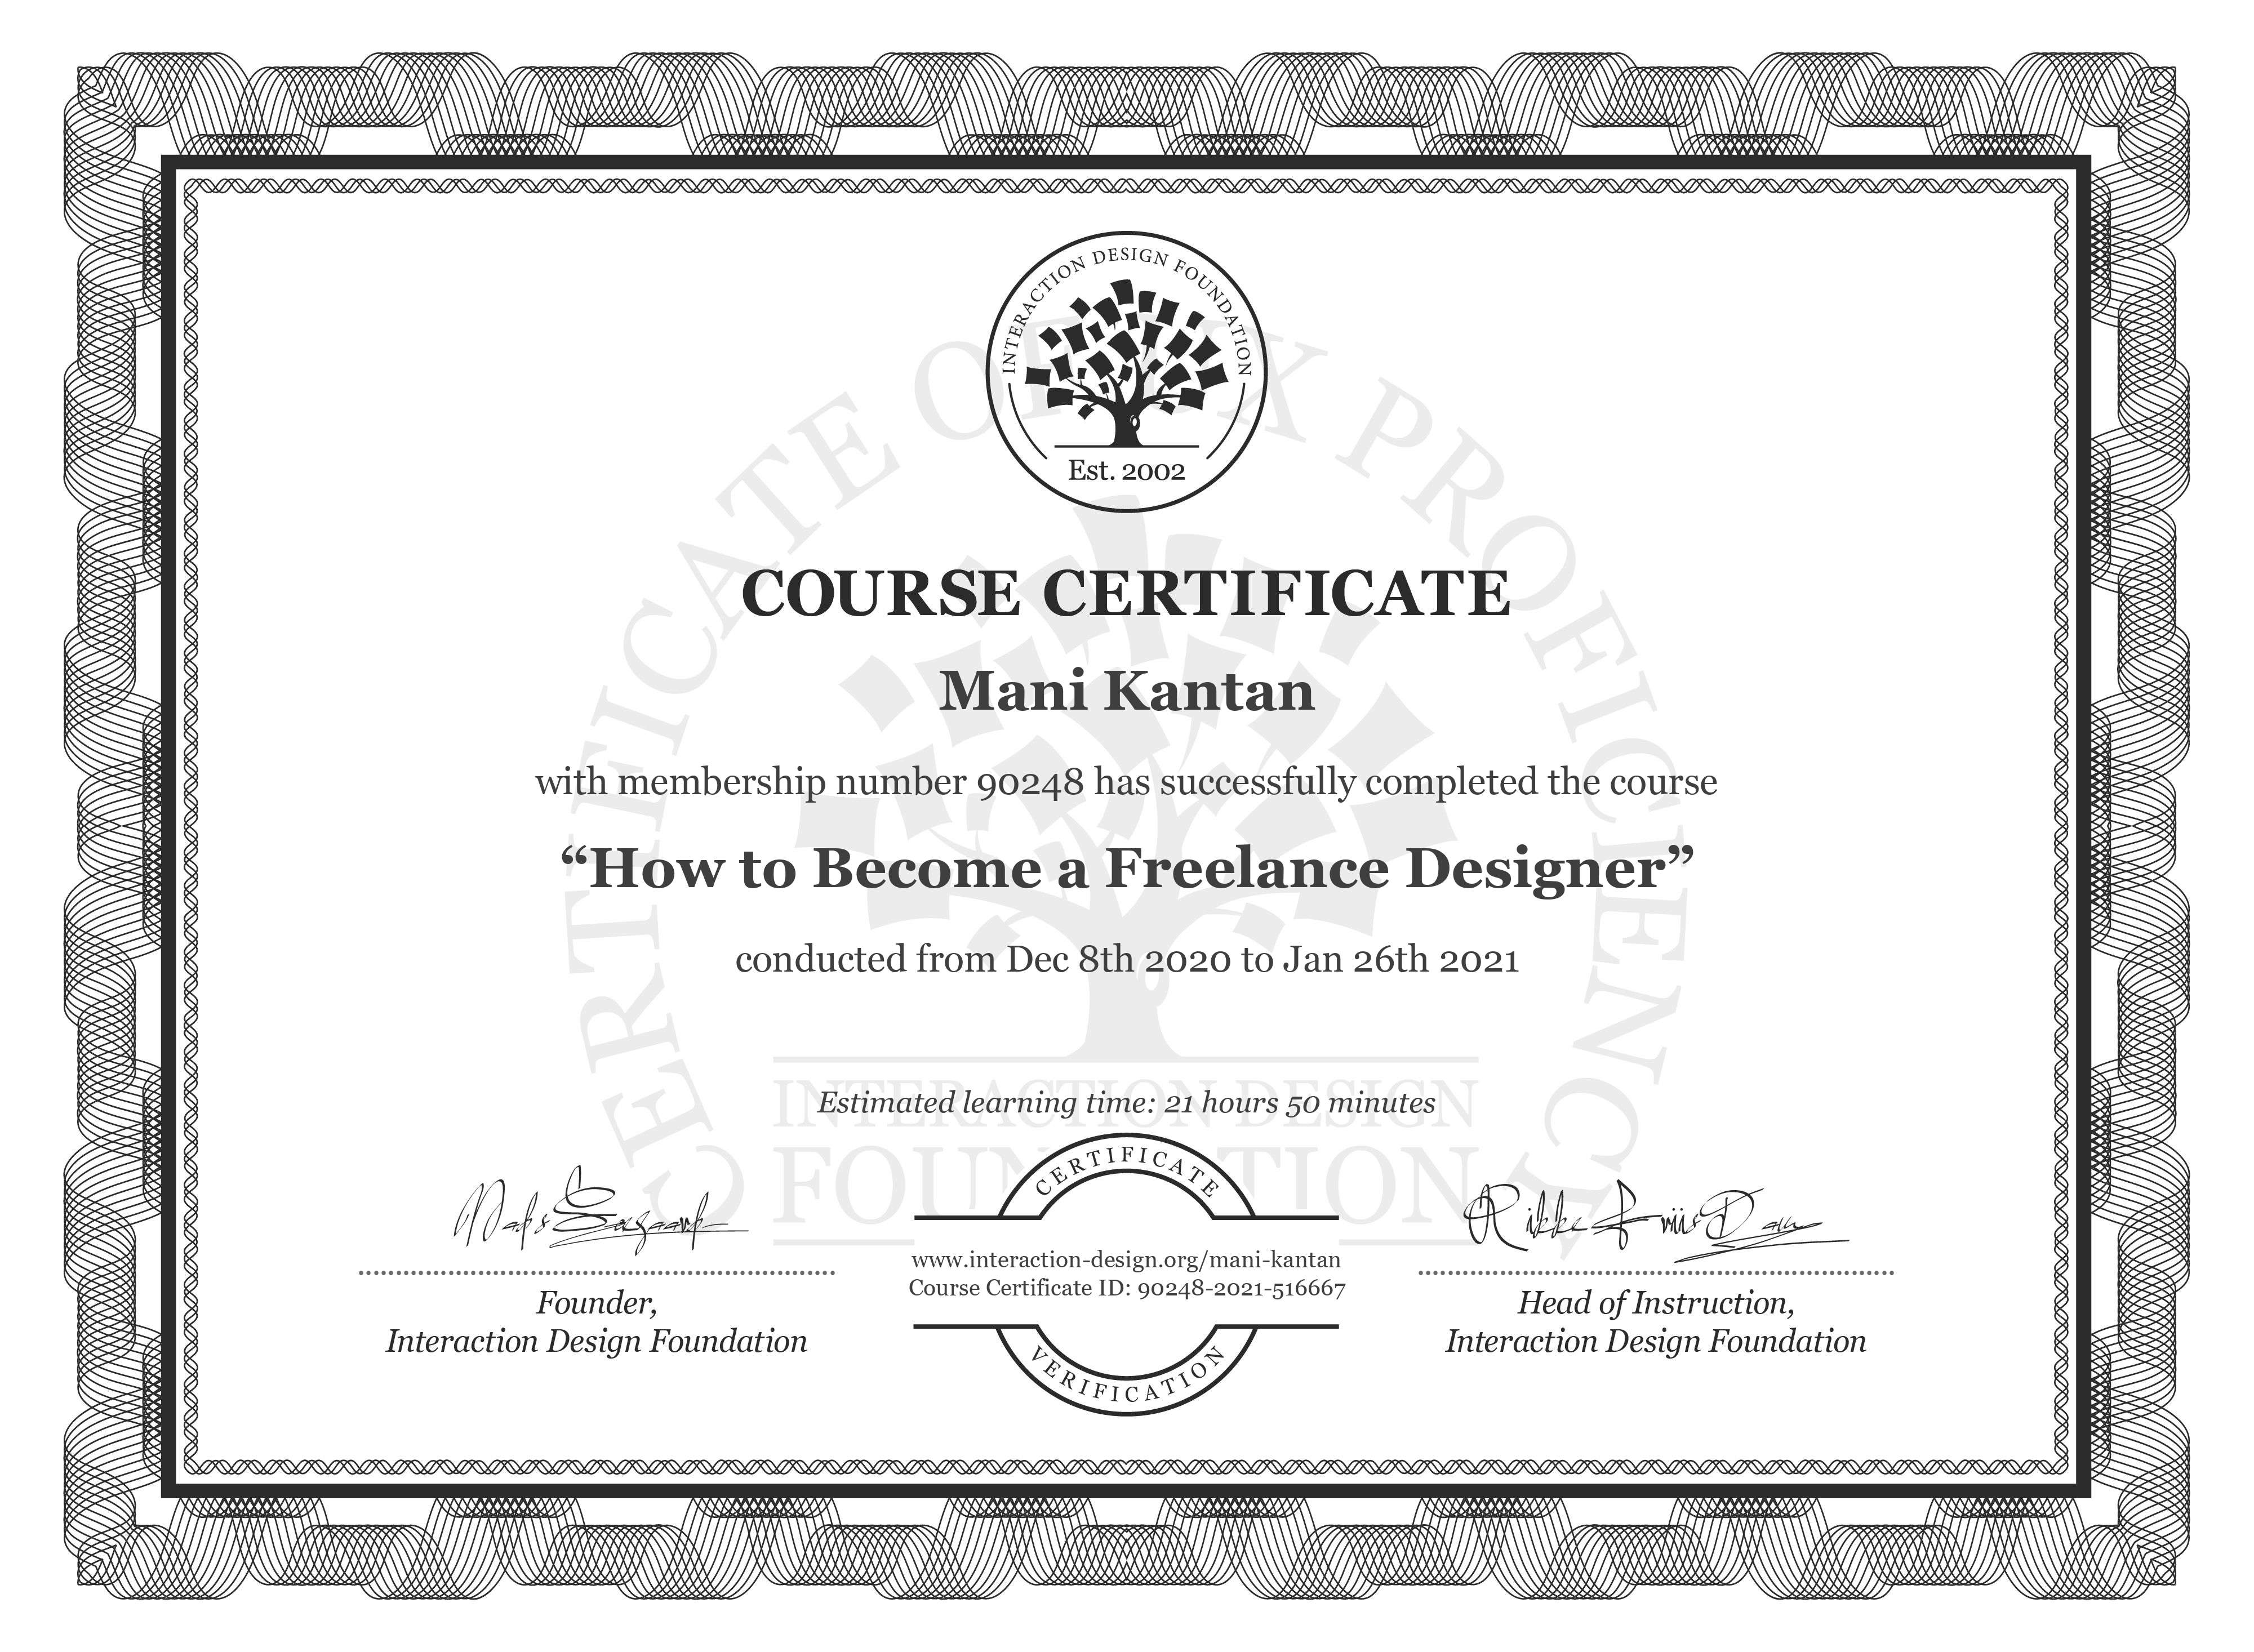 Mani Kantan's Course Certificate: How to Become a Freelance Designer